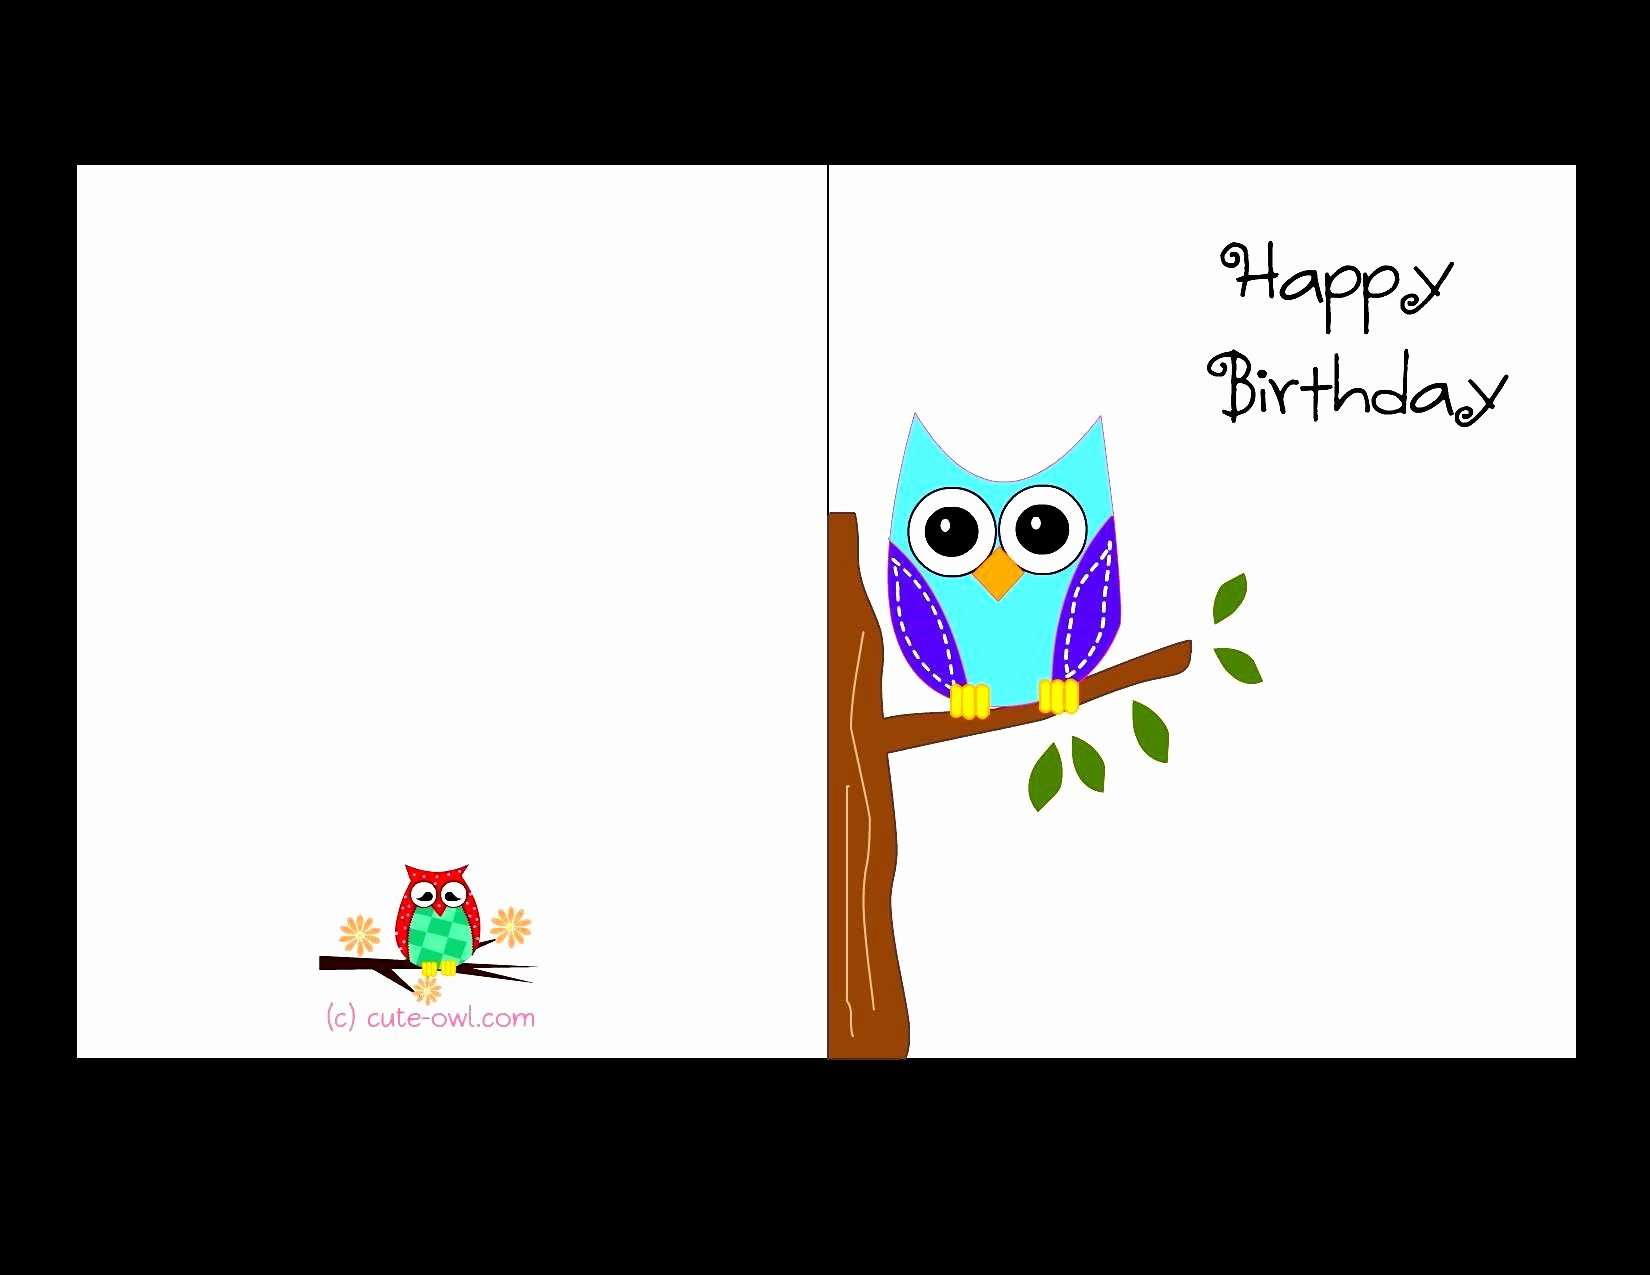 Happy Birthday Card Template Lovely Birthday Card Template